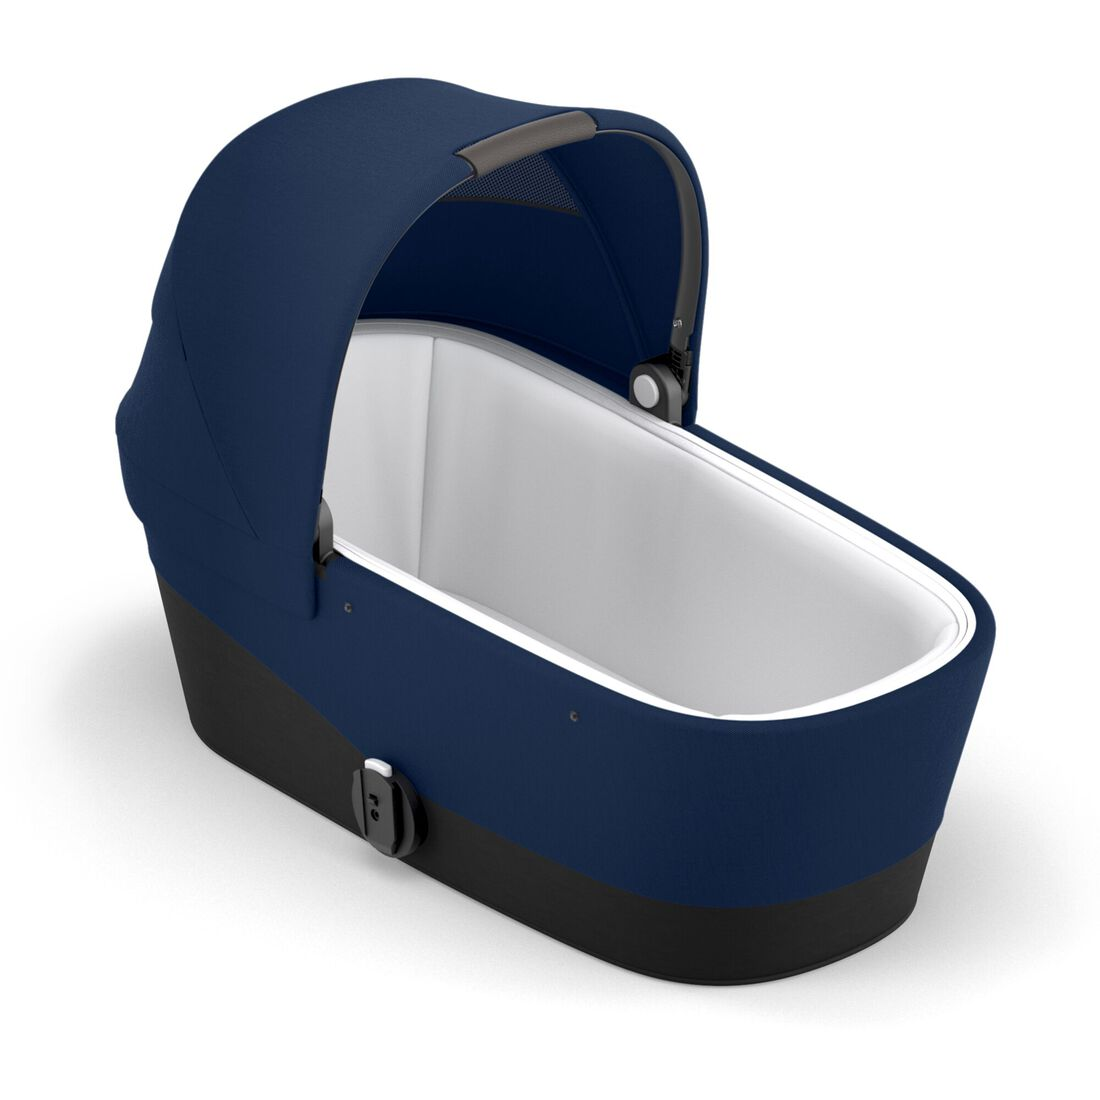 CYBEX Gazelle S Cot - Navy Blue in Navy Blue large image number 2